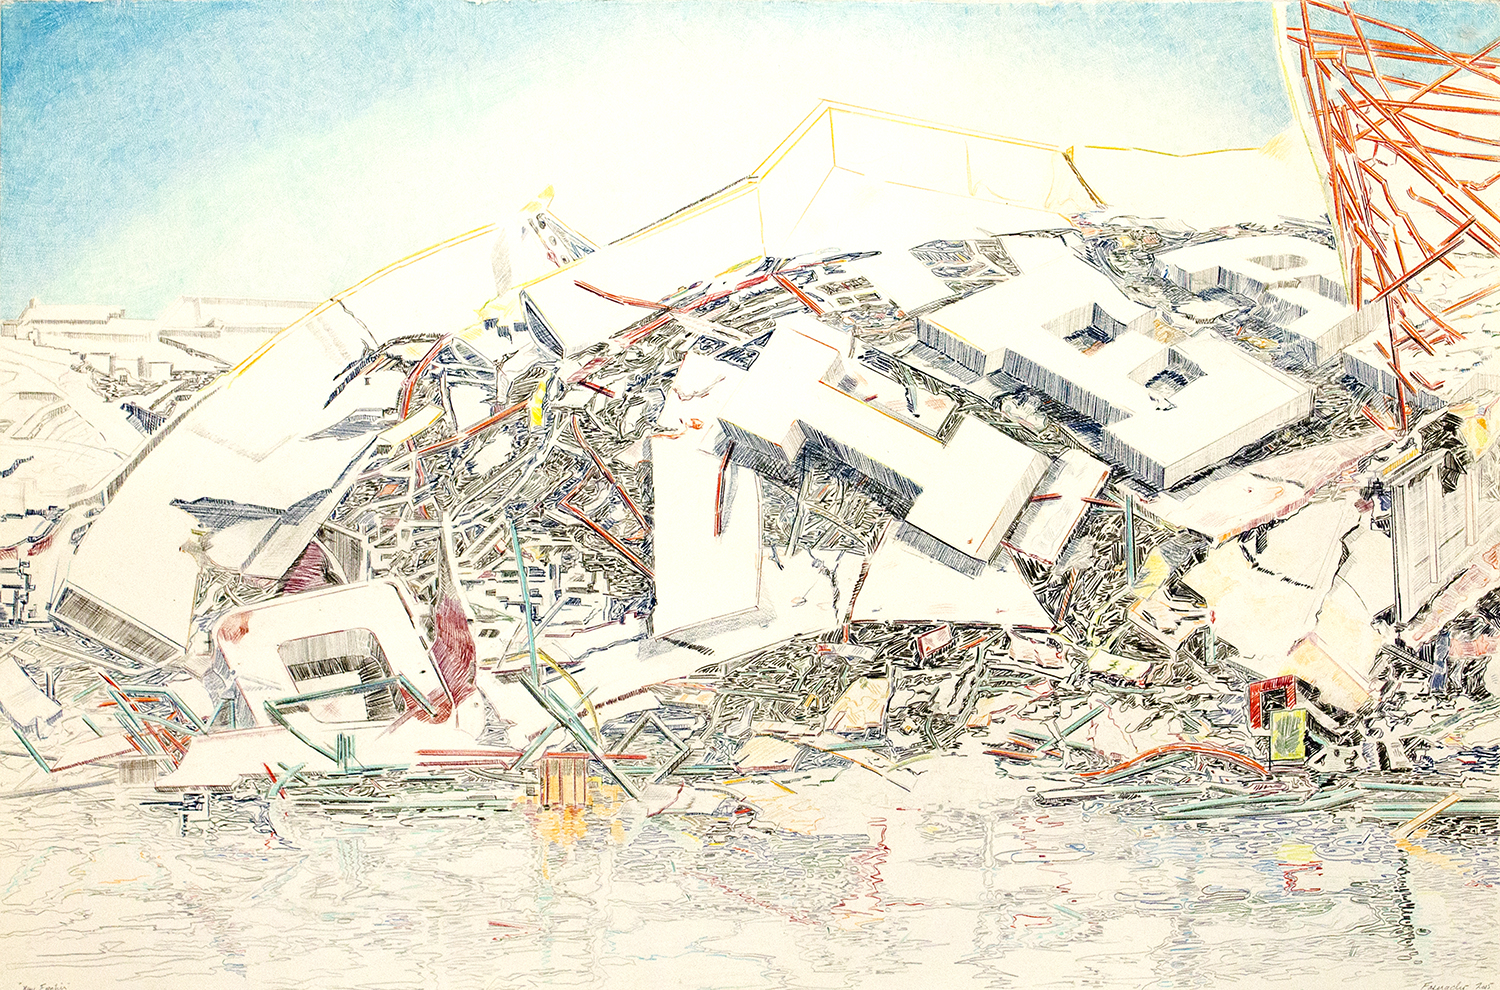 New Frontier, 2015, Colored pencil and graphite on paper, 40 x 60 inches